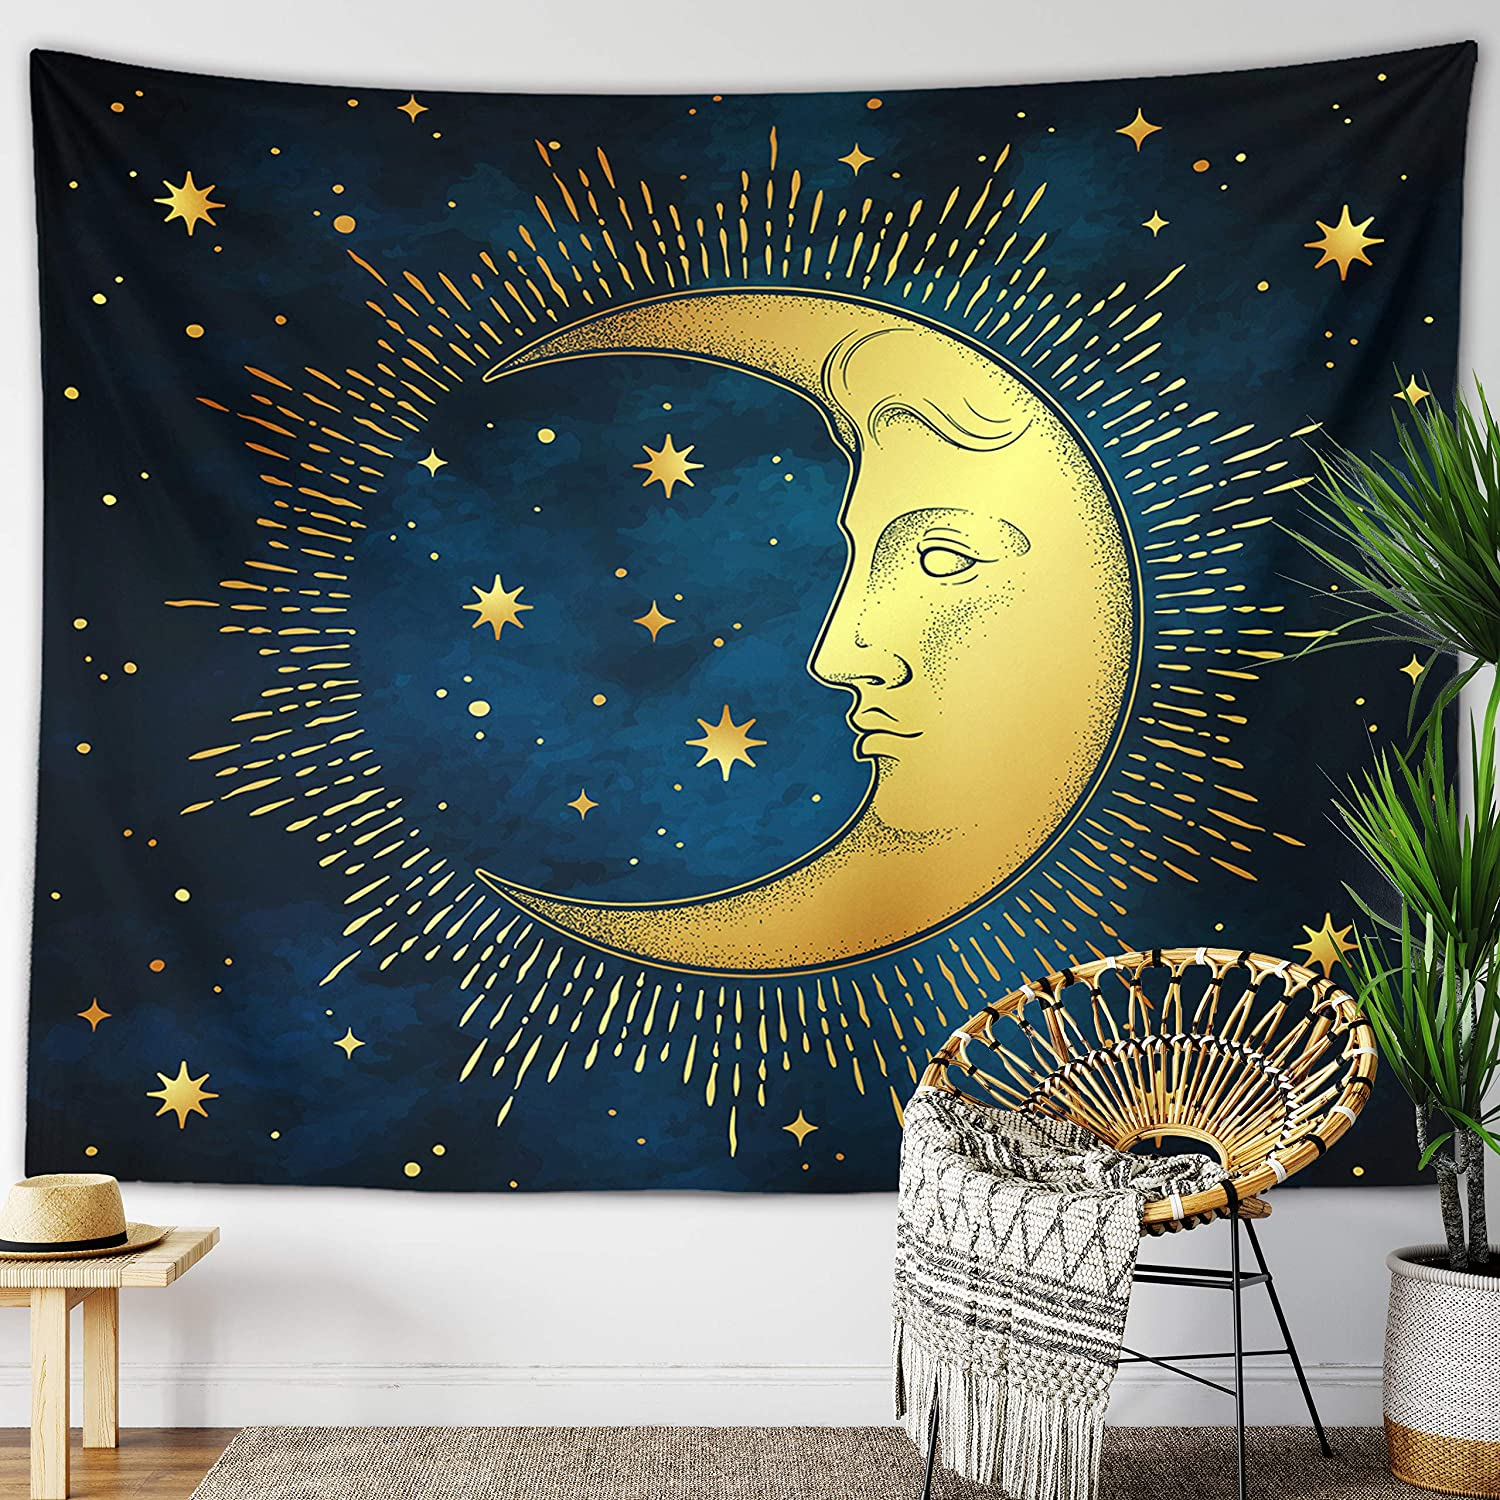 "Sun Moon Tapestry Starry Night Wall Hanging Moon Landscape Constellations Lunar Phases Bohemian Eclipse Black and White Wall Decor Astrology Galaxy Boho Celestial Tapestry (Blue Moon Face, 59""x79"")"